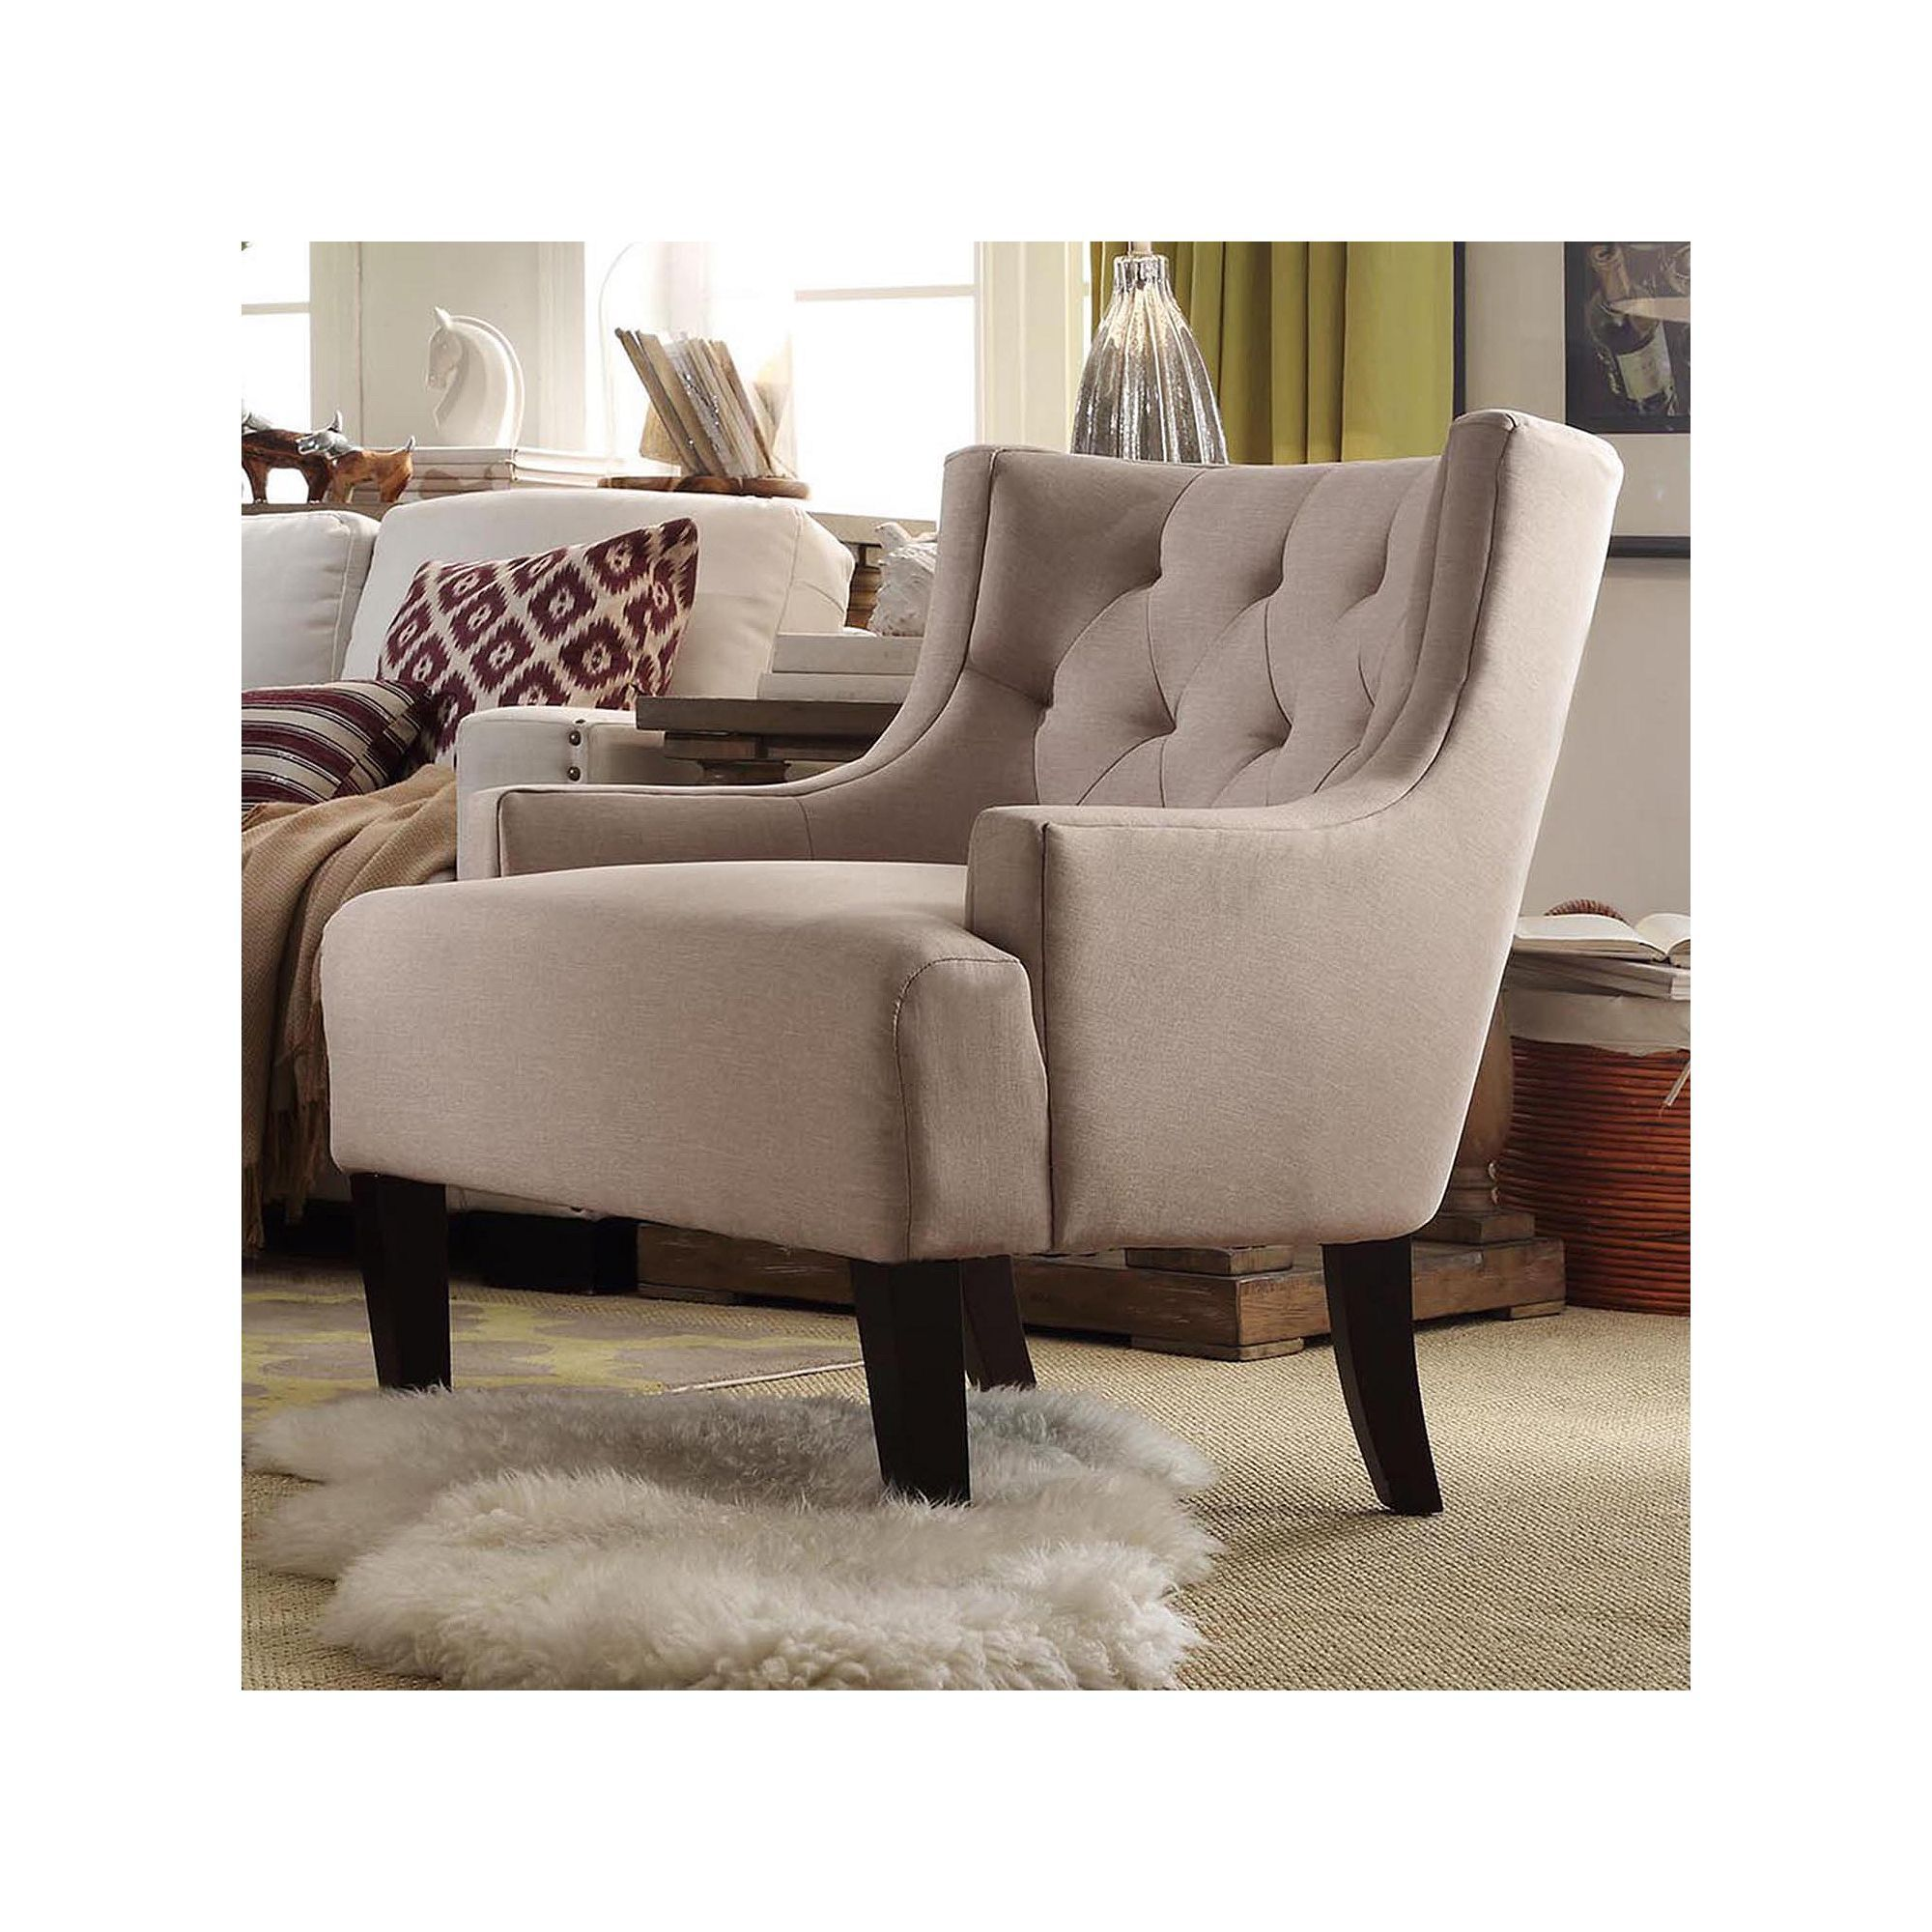 homevance kingston tufted barrel wingback chair wingback chairs